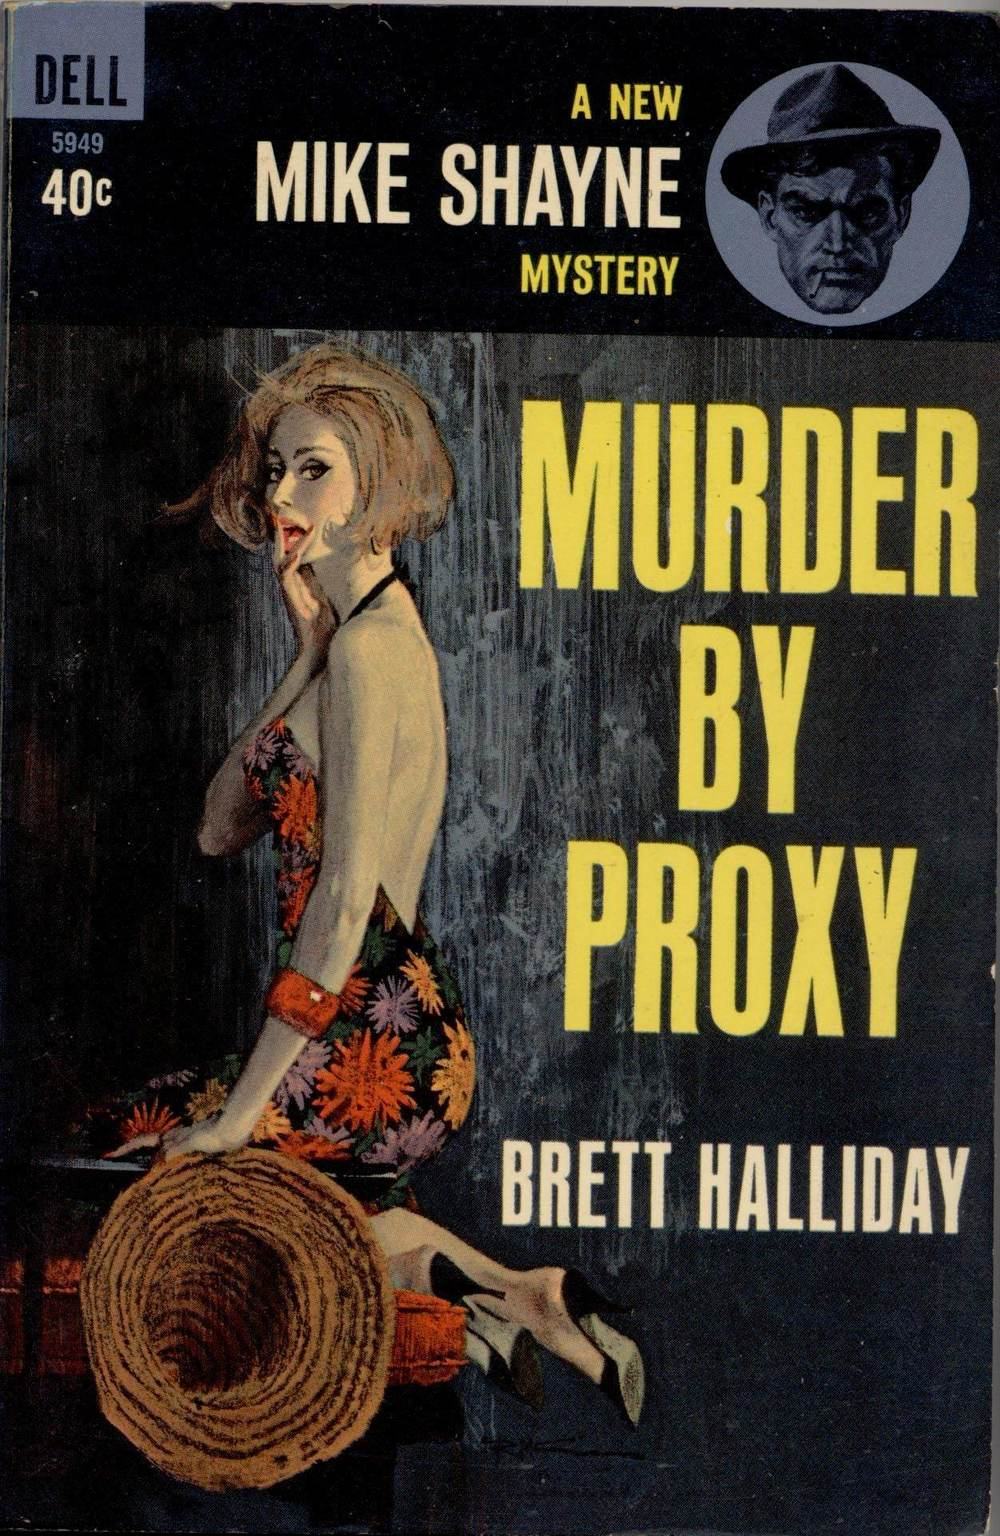 1963-Murder-by-Proxy-by-Brett-Halliday.-Cover-art-by-Robert-McGinnis.jpg